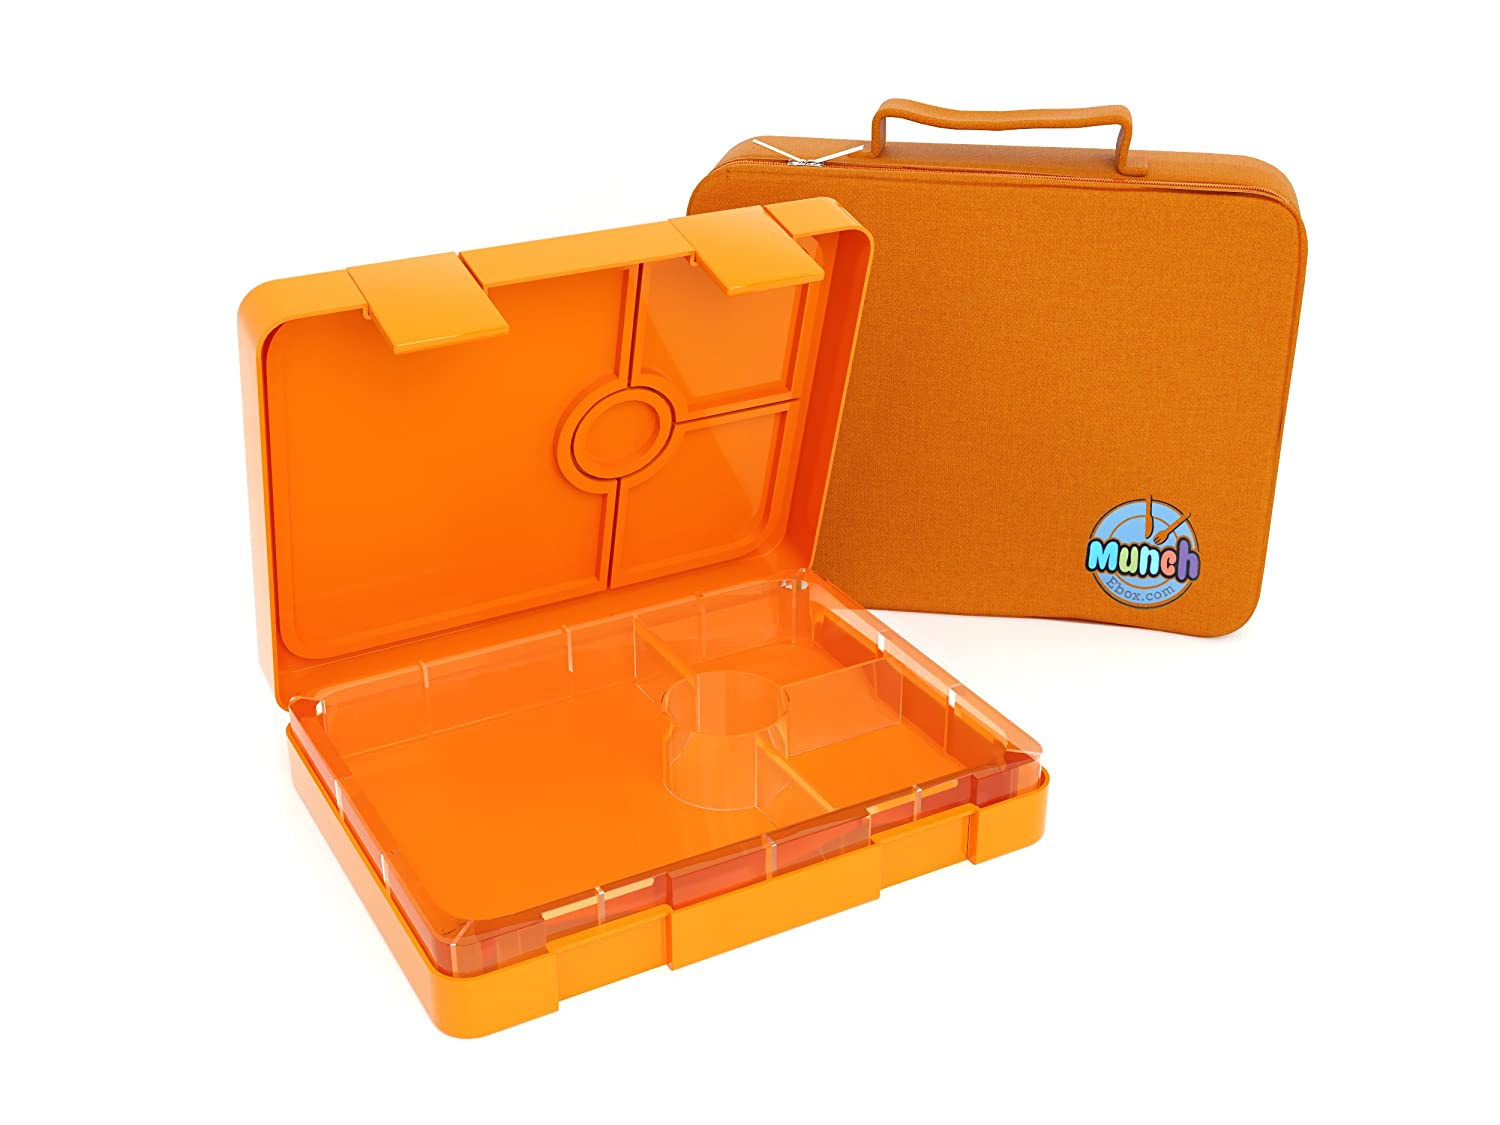 Childrens lunch box With FREE BAG Zesty Orange - Leakproof 4 compartment Bento box style for Meal and Snack - For Kids, Teans, Adults Munchebox© 4-Zesty Orange